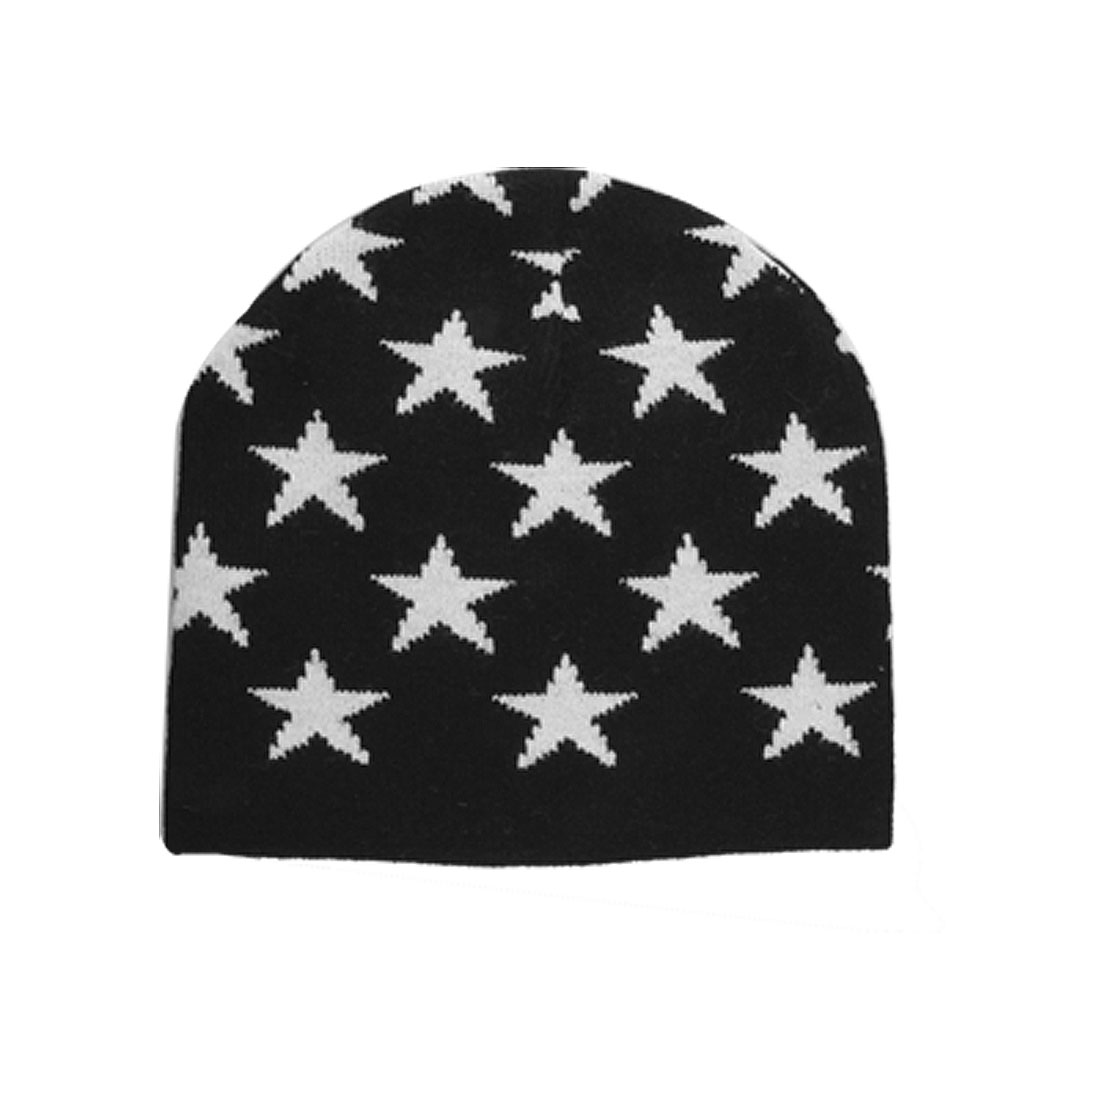 Winter-Warm-Black-White-Knitting-Beanie-Cap-for-Kids